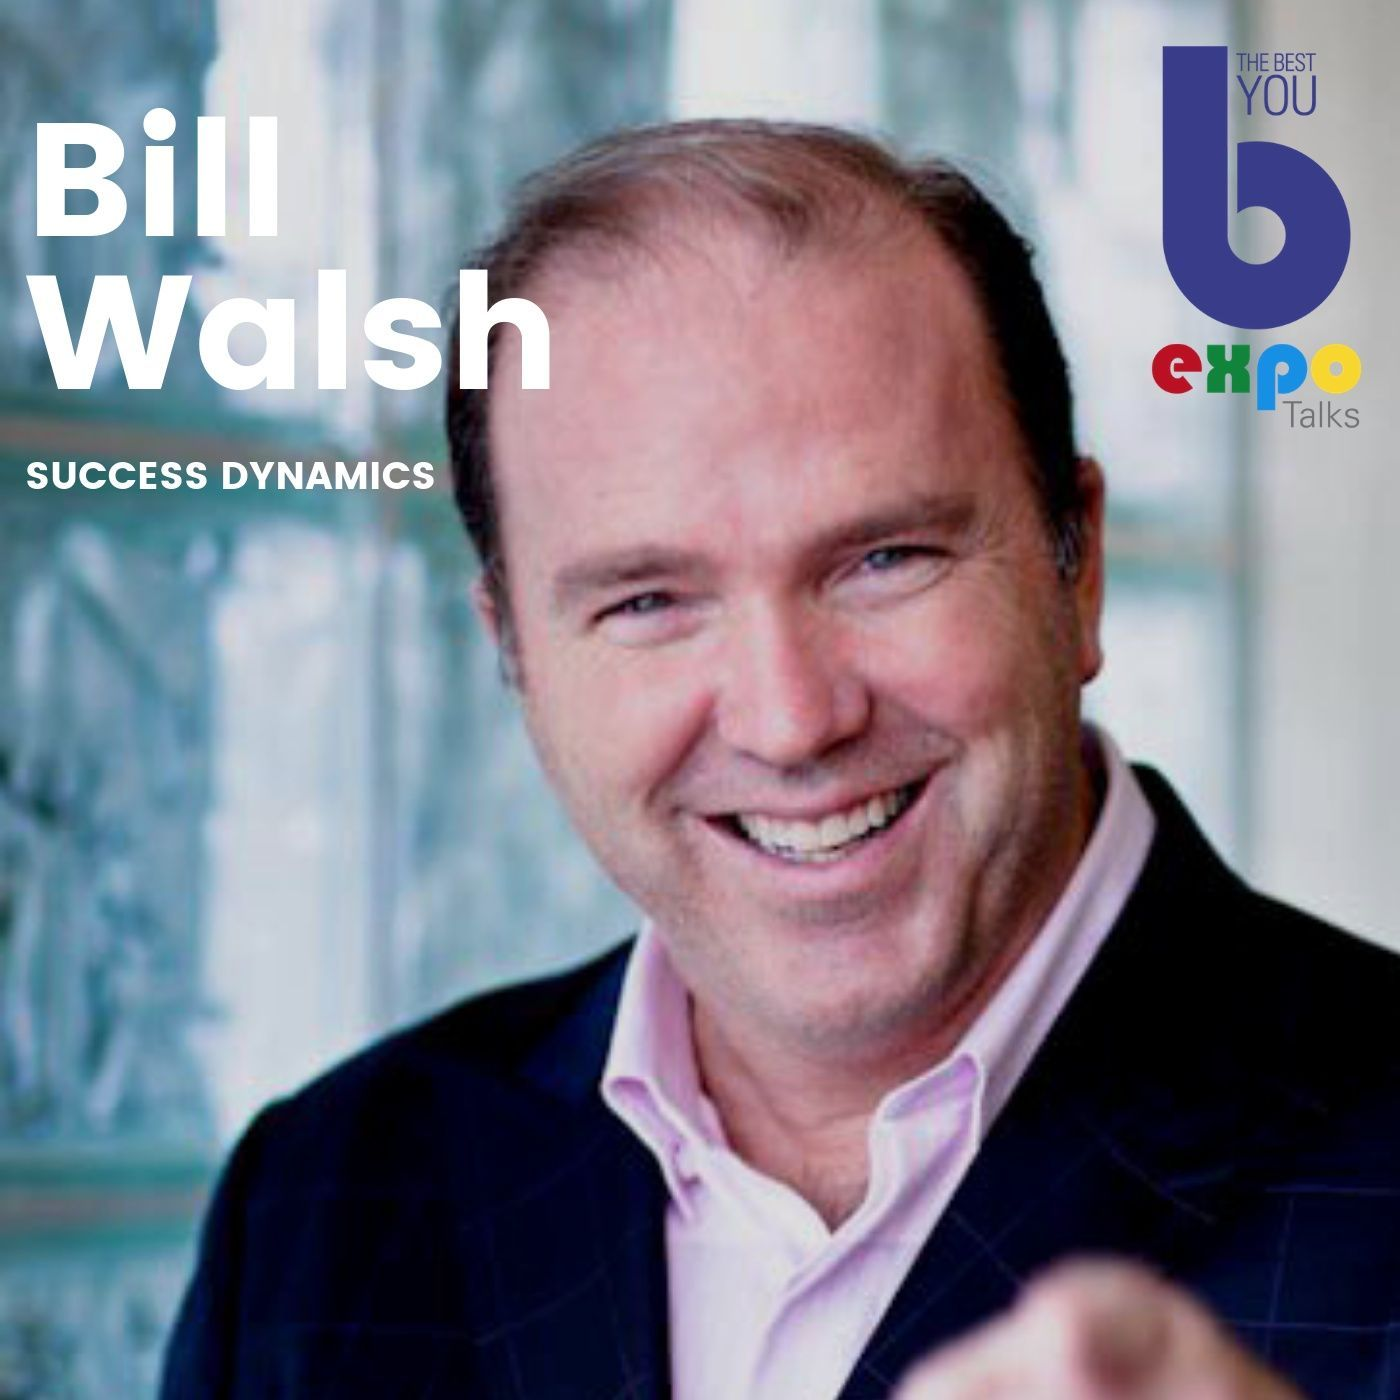 Listen to Bill Walsh at The Best You EXPO